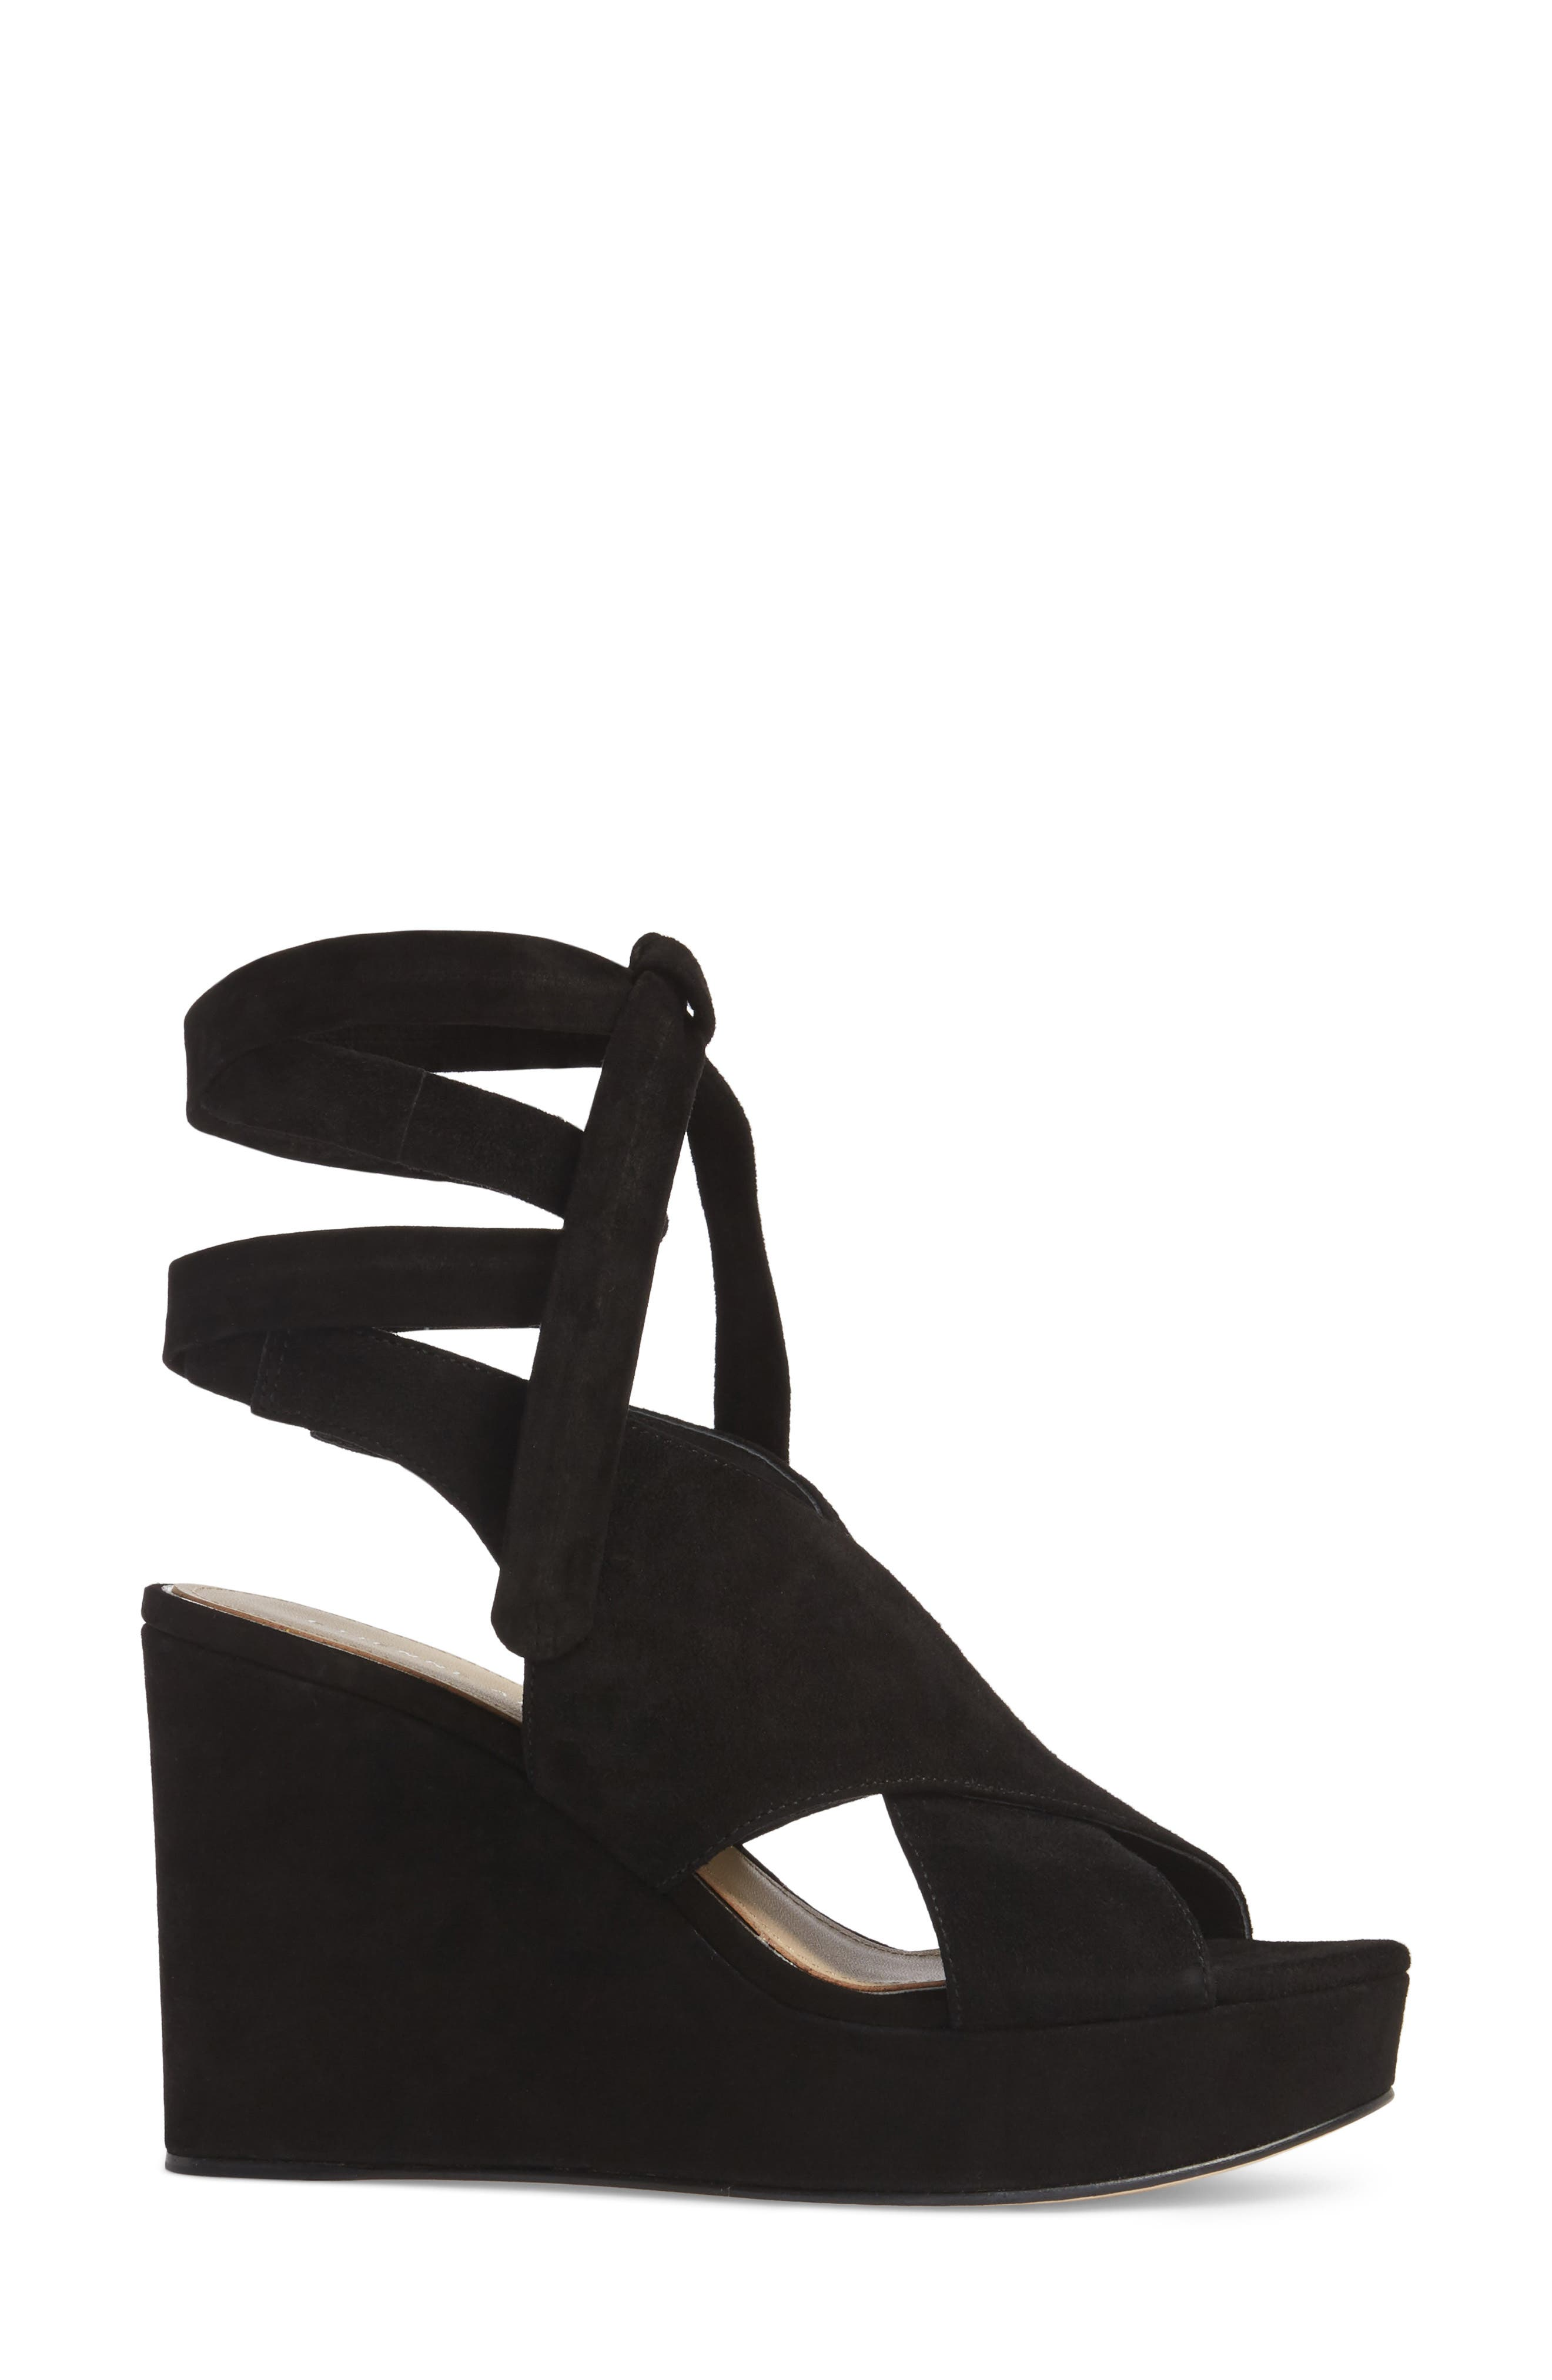 Dominica Platform Wedge Sandal,                             Alternate thumbnail 3, color,                             BLACK SUEDE